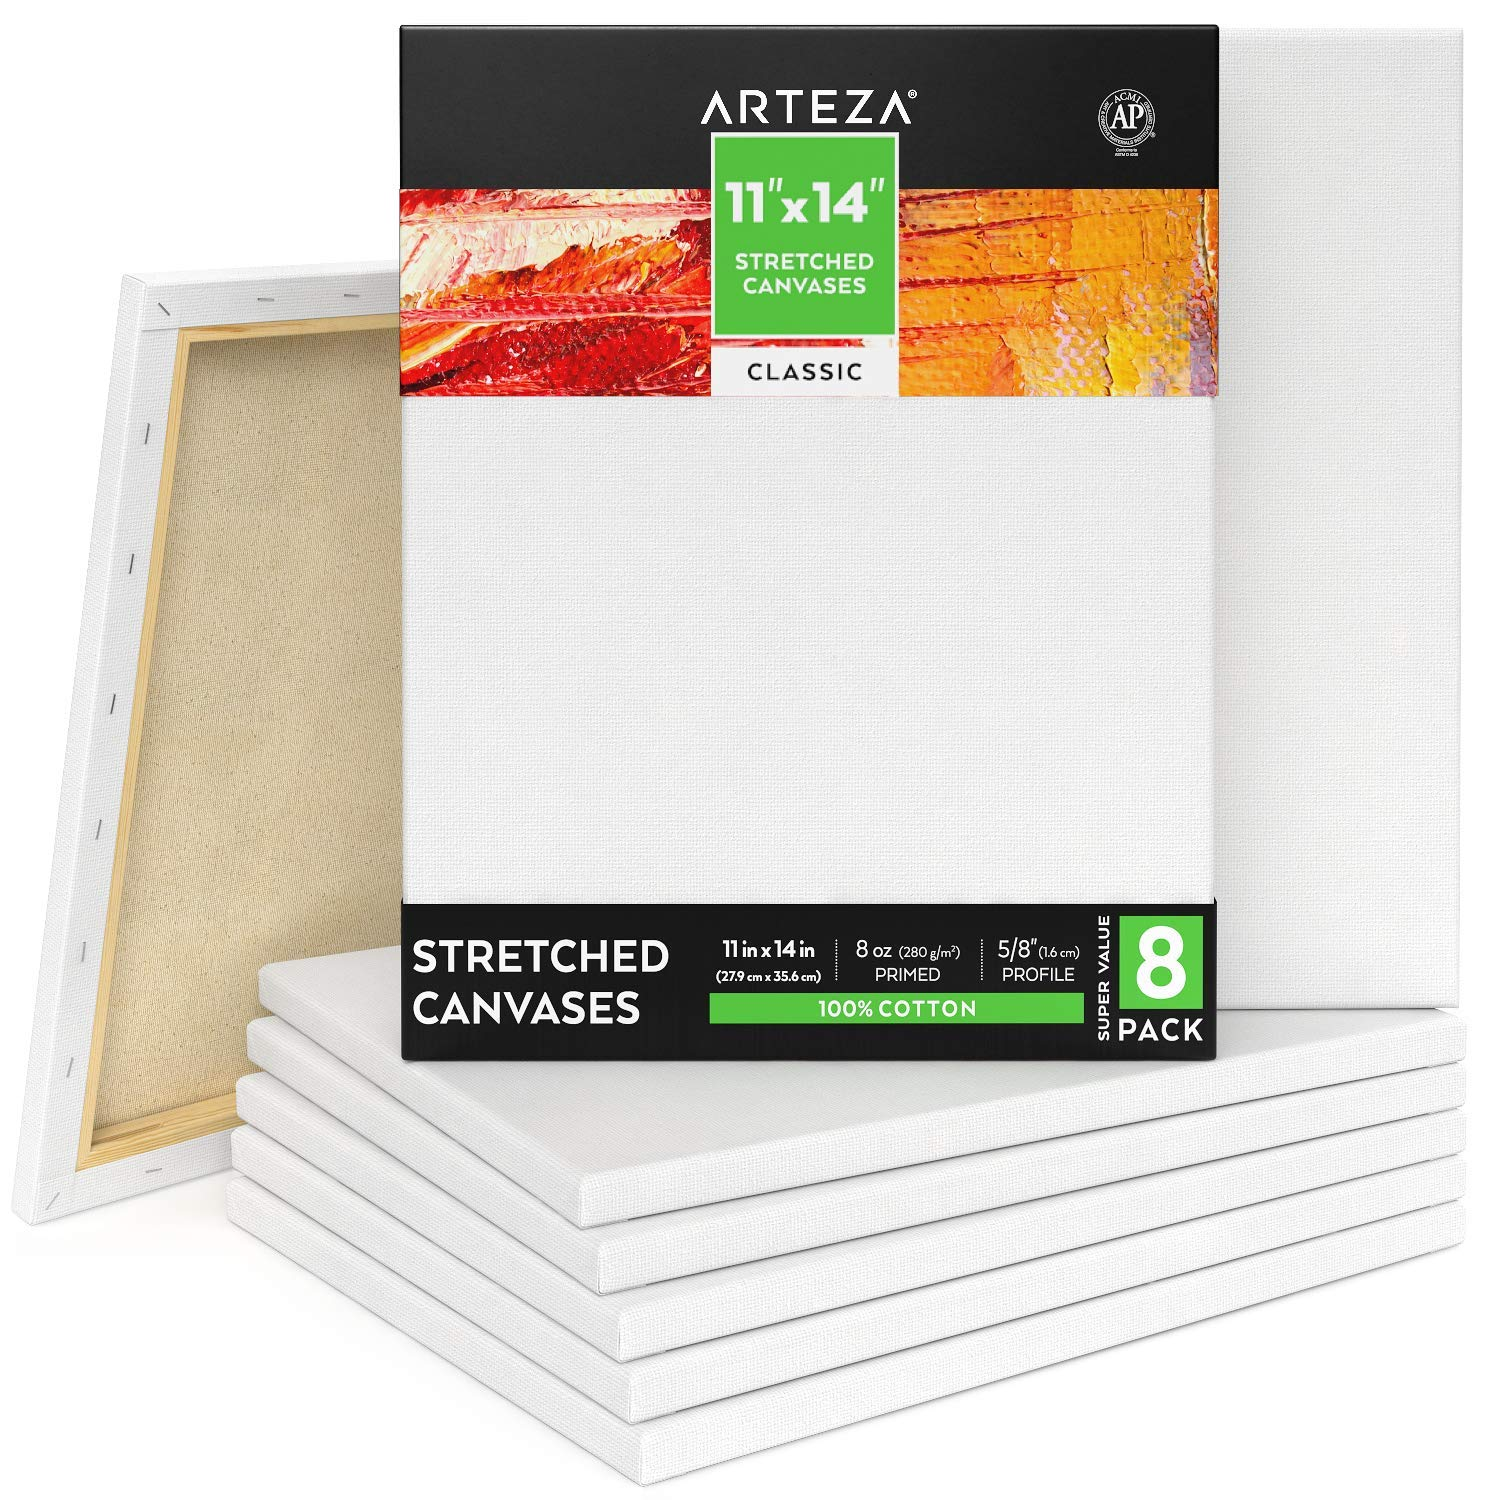 """Arteza Stretched Canvas 11x14"""" White Blank Bulk Pack of 8, Primed, 100% Cotton for Painting, Acrylic Pouring, Oil Paint & Wet Art Media"""